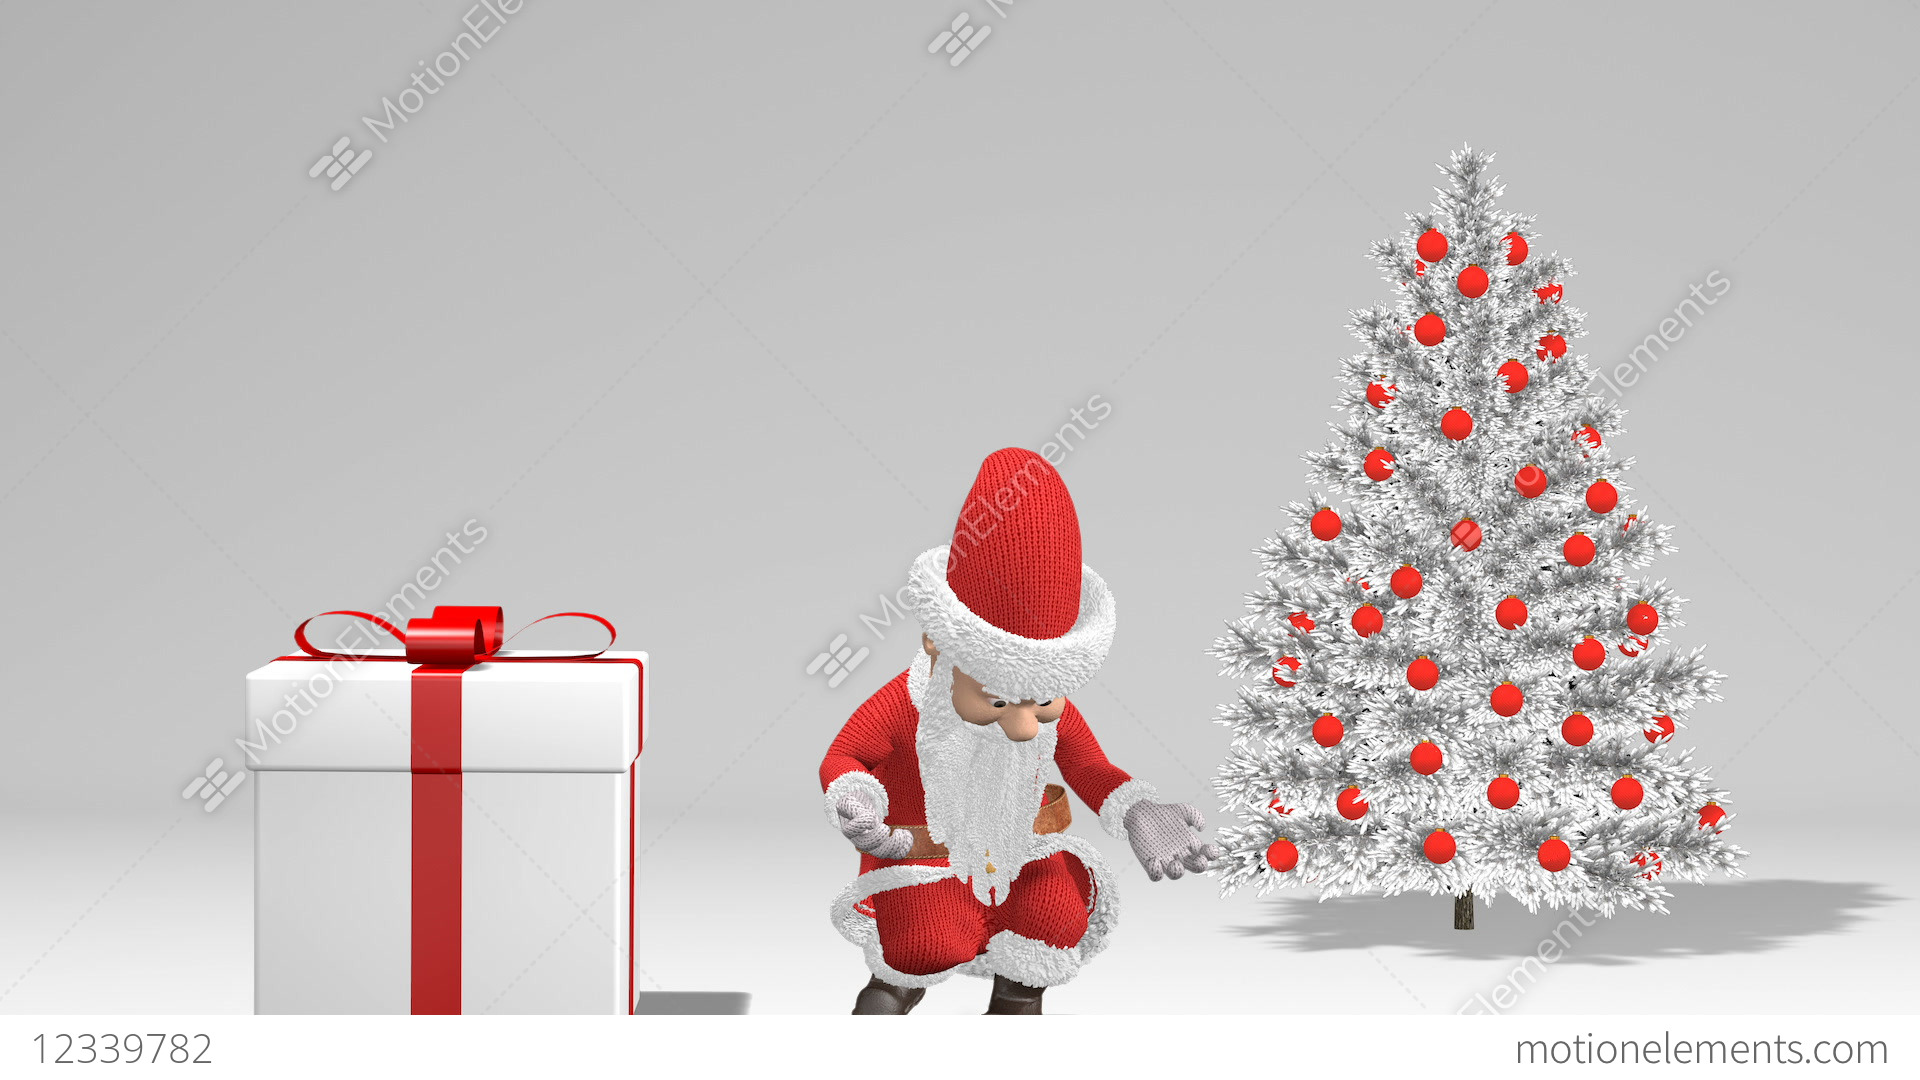 Merry Christmas And Happy New Year 2019 Animation Santa Claus With